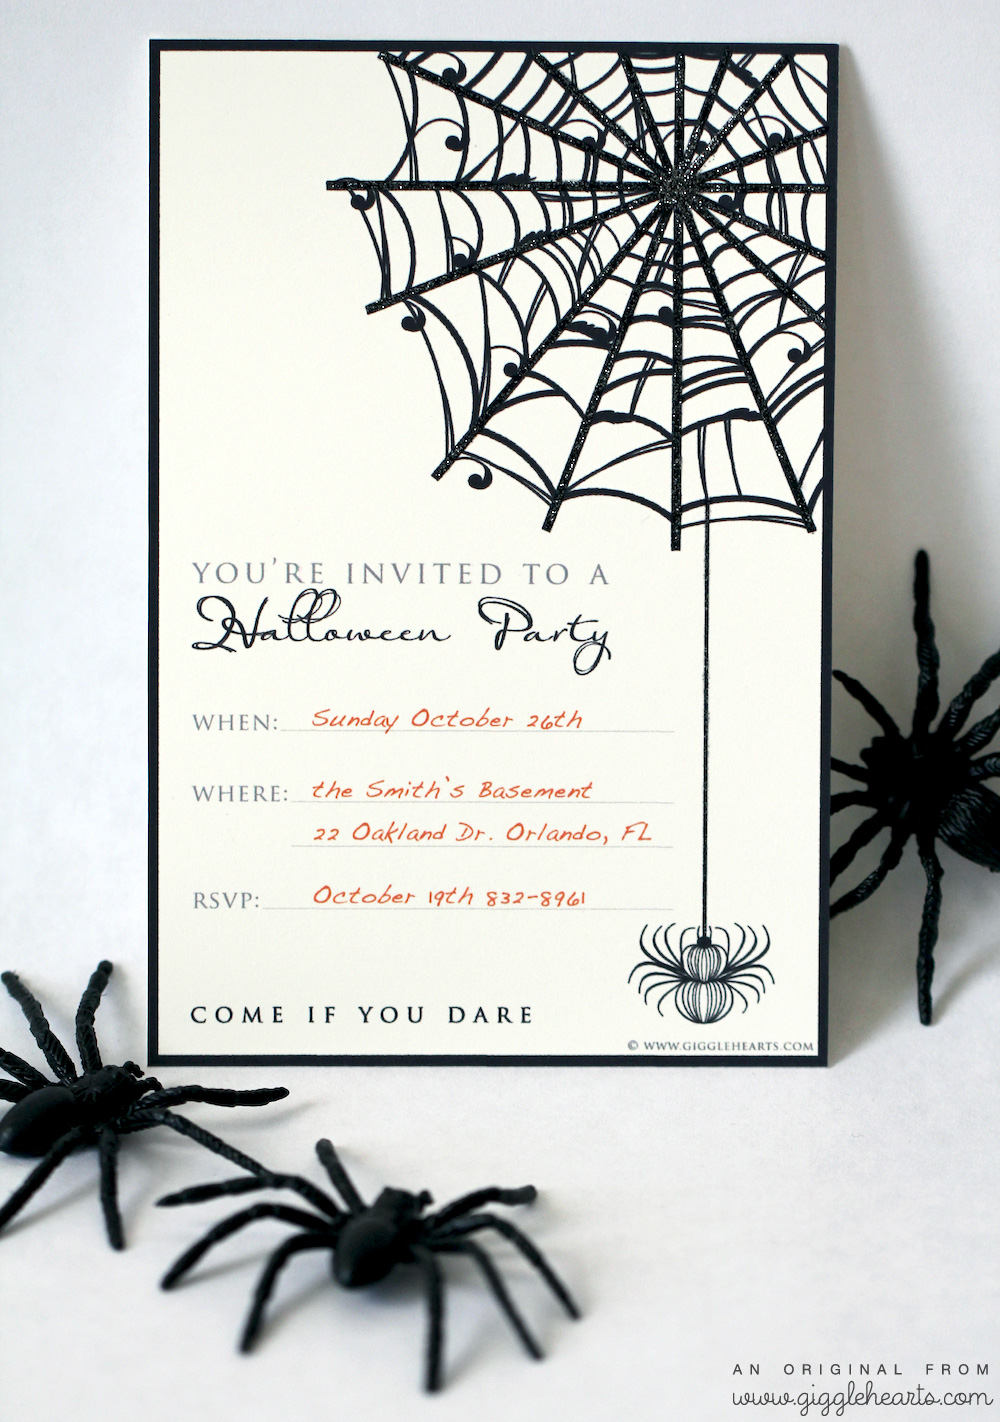 costumes party invitation wording festival collections funny – Free Printable Halloween Costume Party Invitations